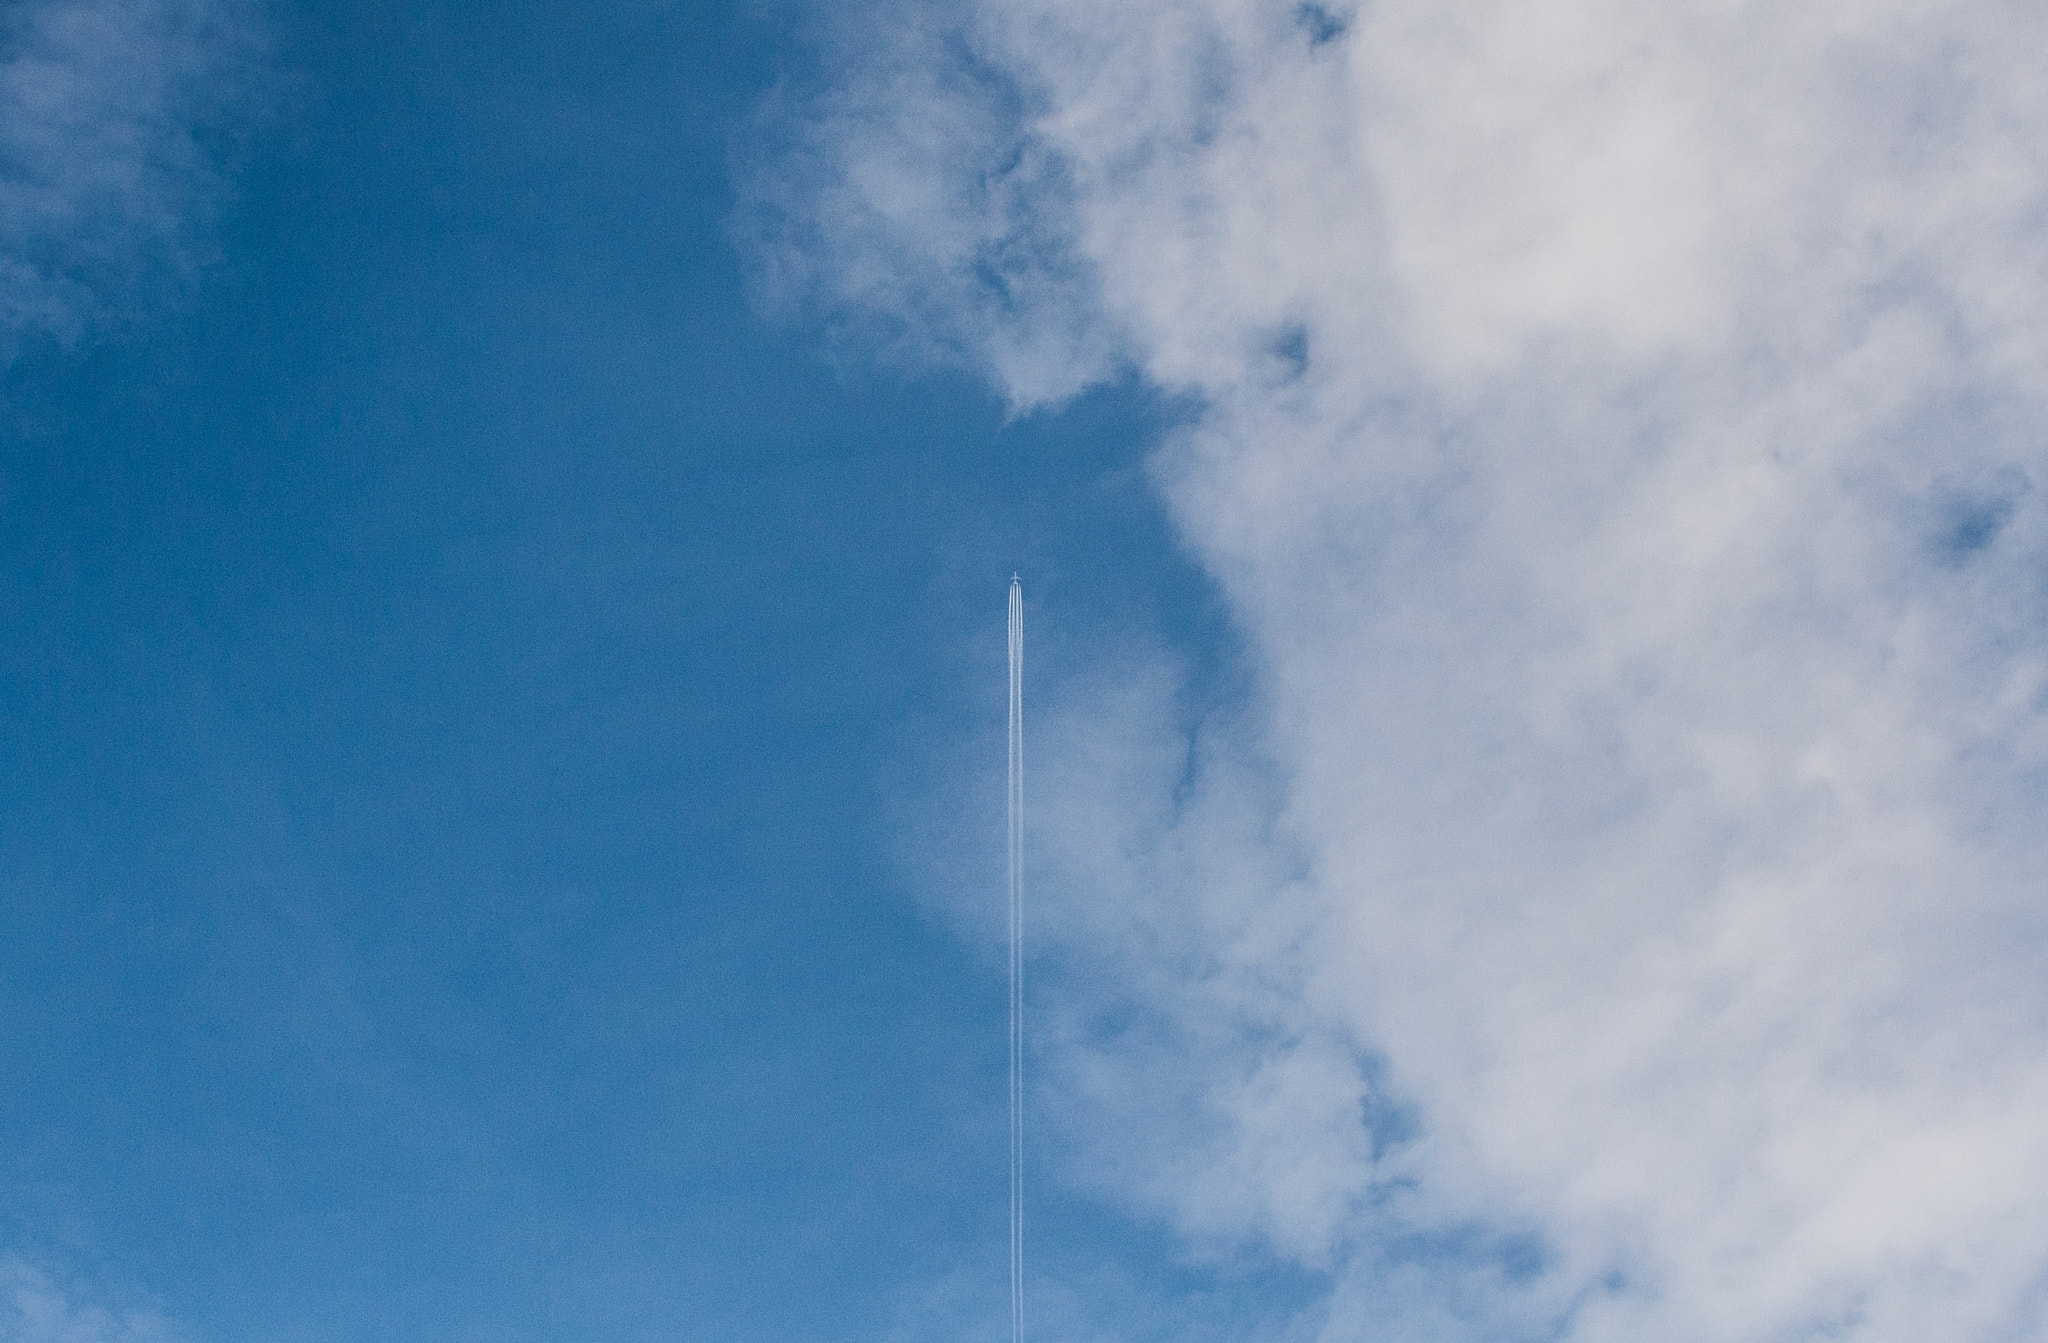 Photograph In the clouds by Glen Saville on 500px